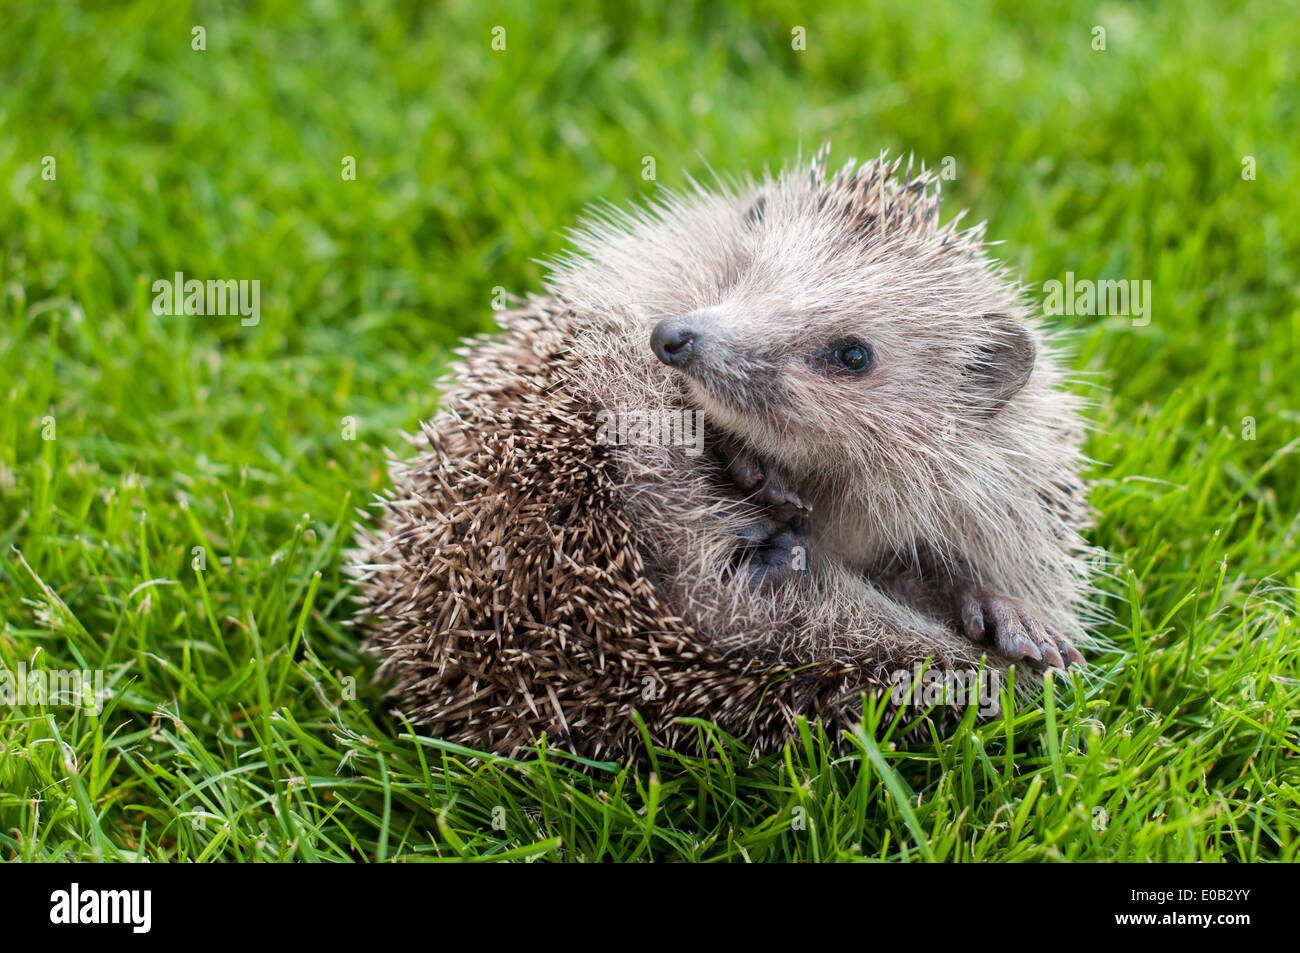 Young Hedgehog in a ball on a green grass Stock Photo